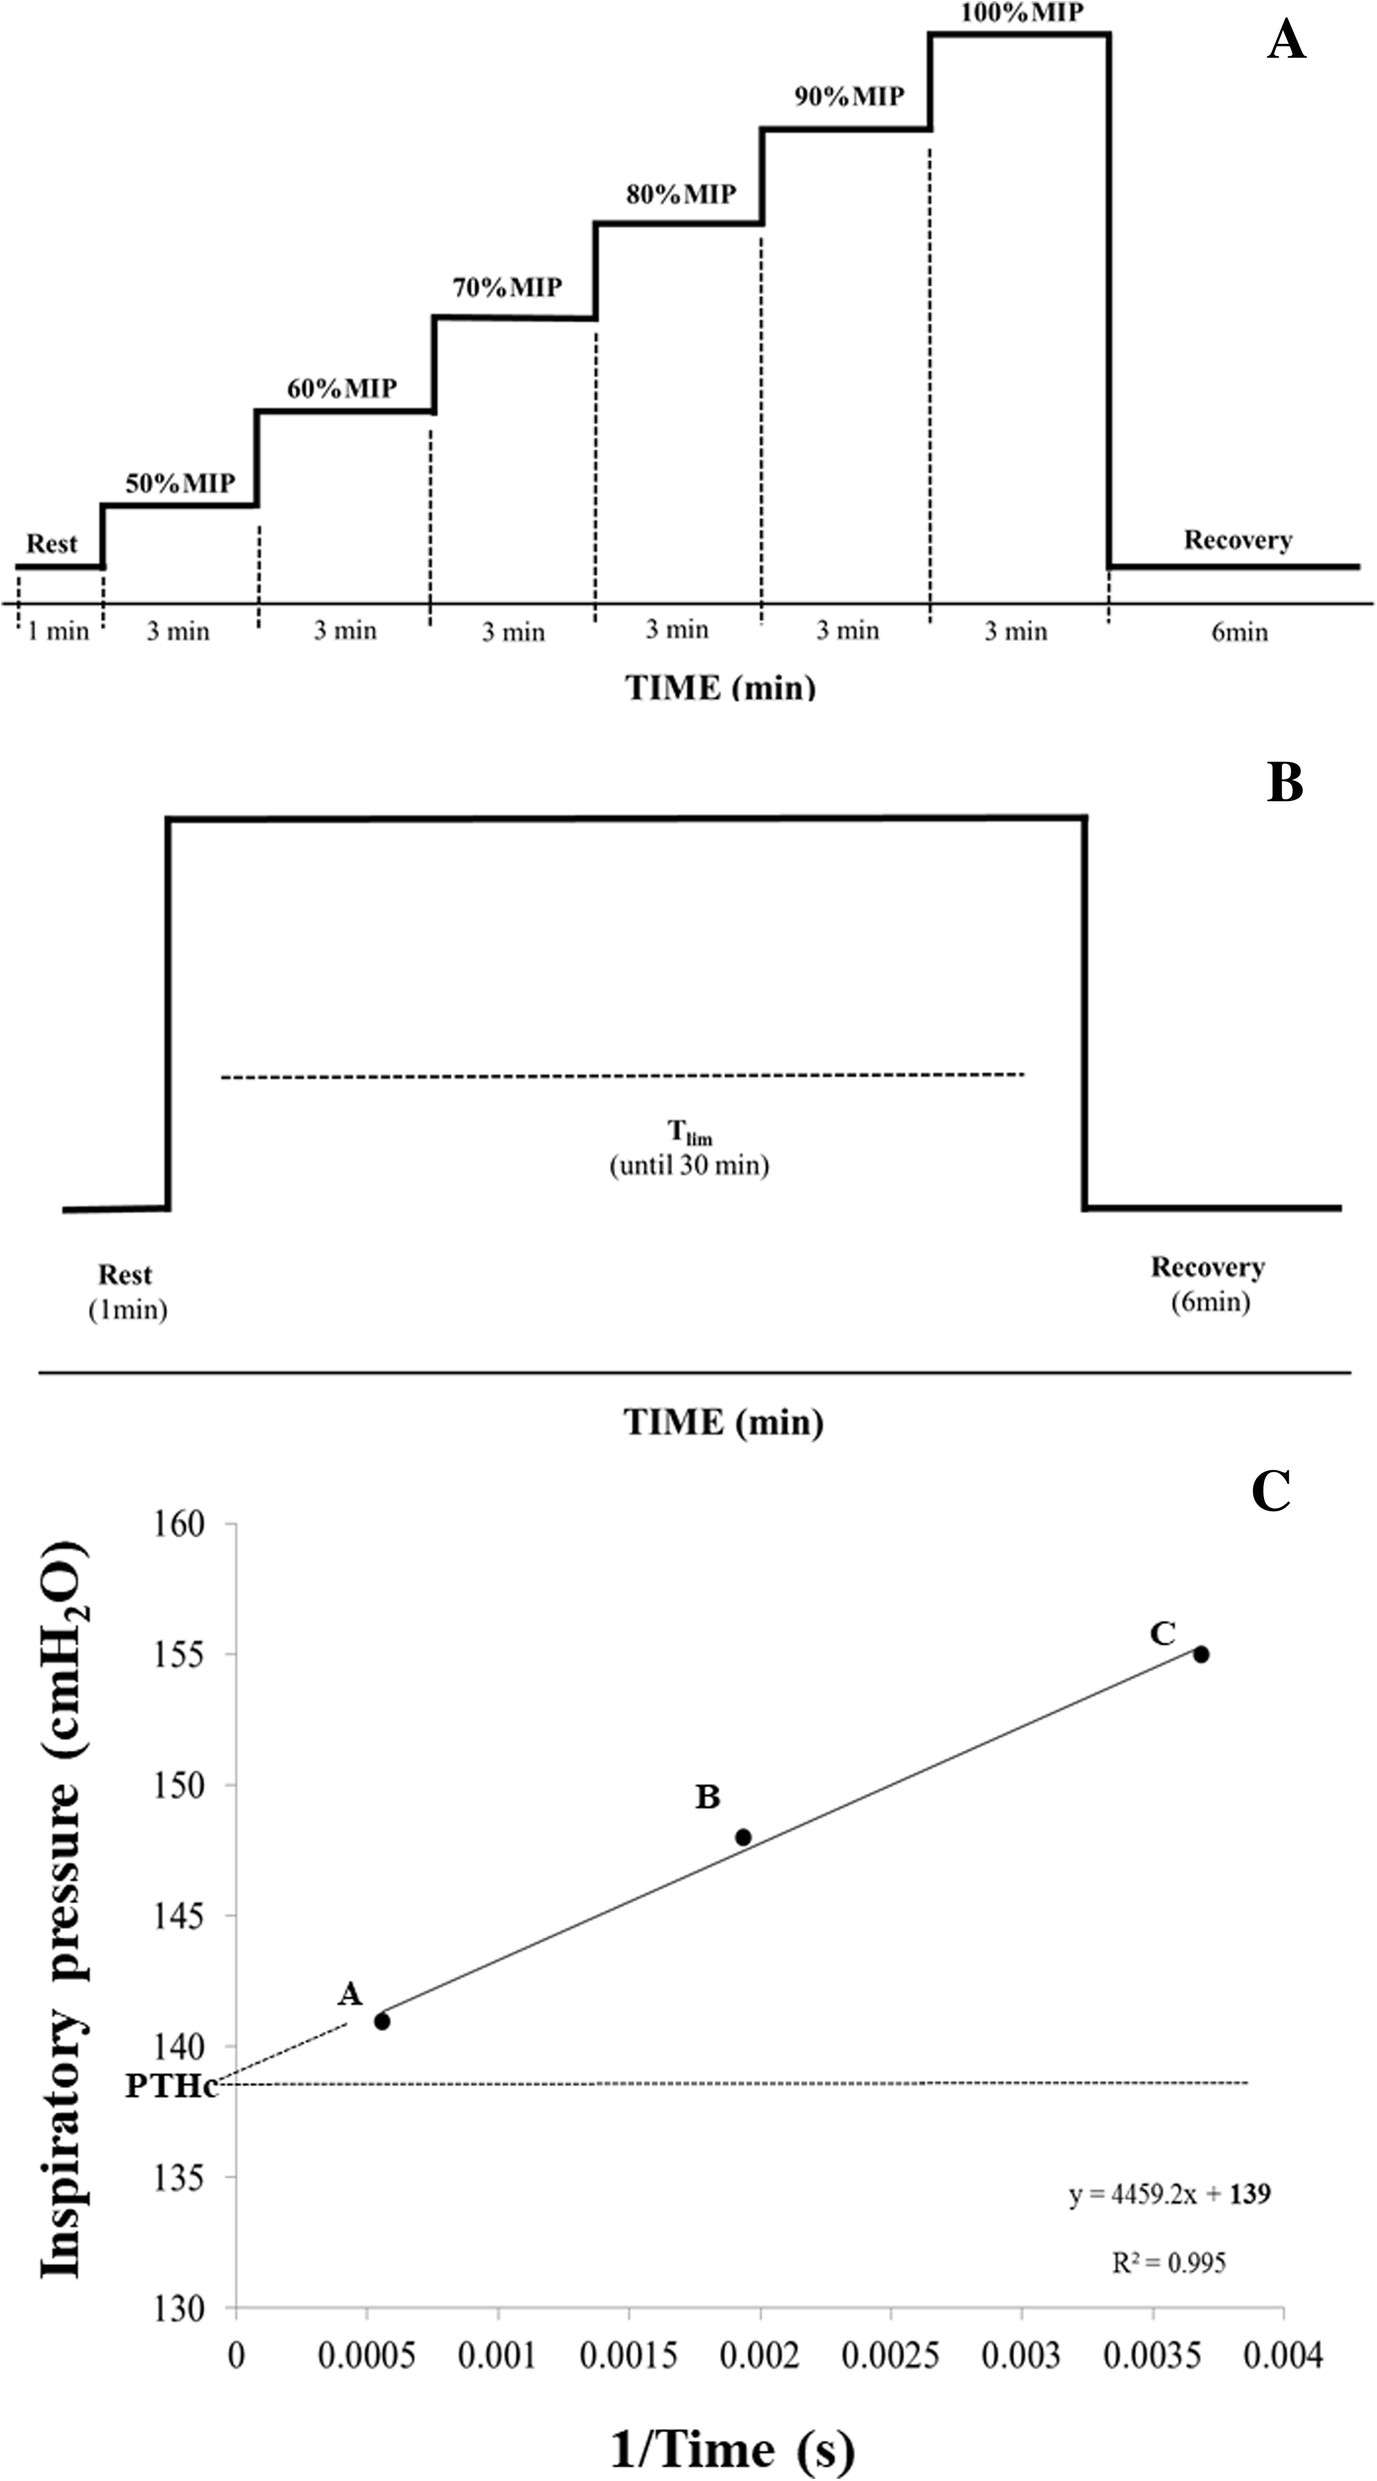 Critical inspiratory pressure – a new methodology for evaluating and